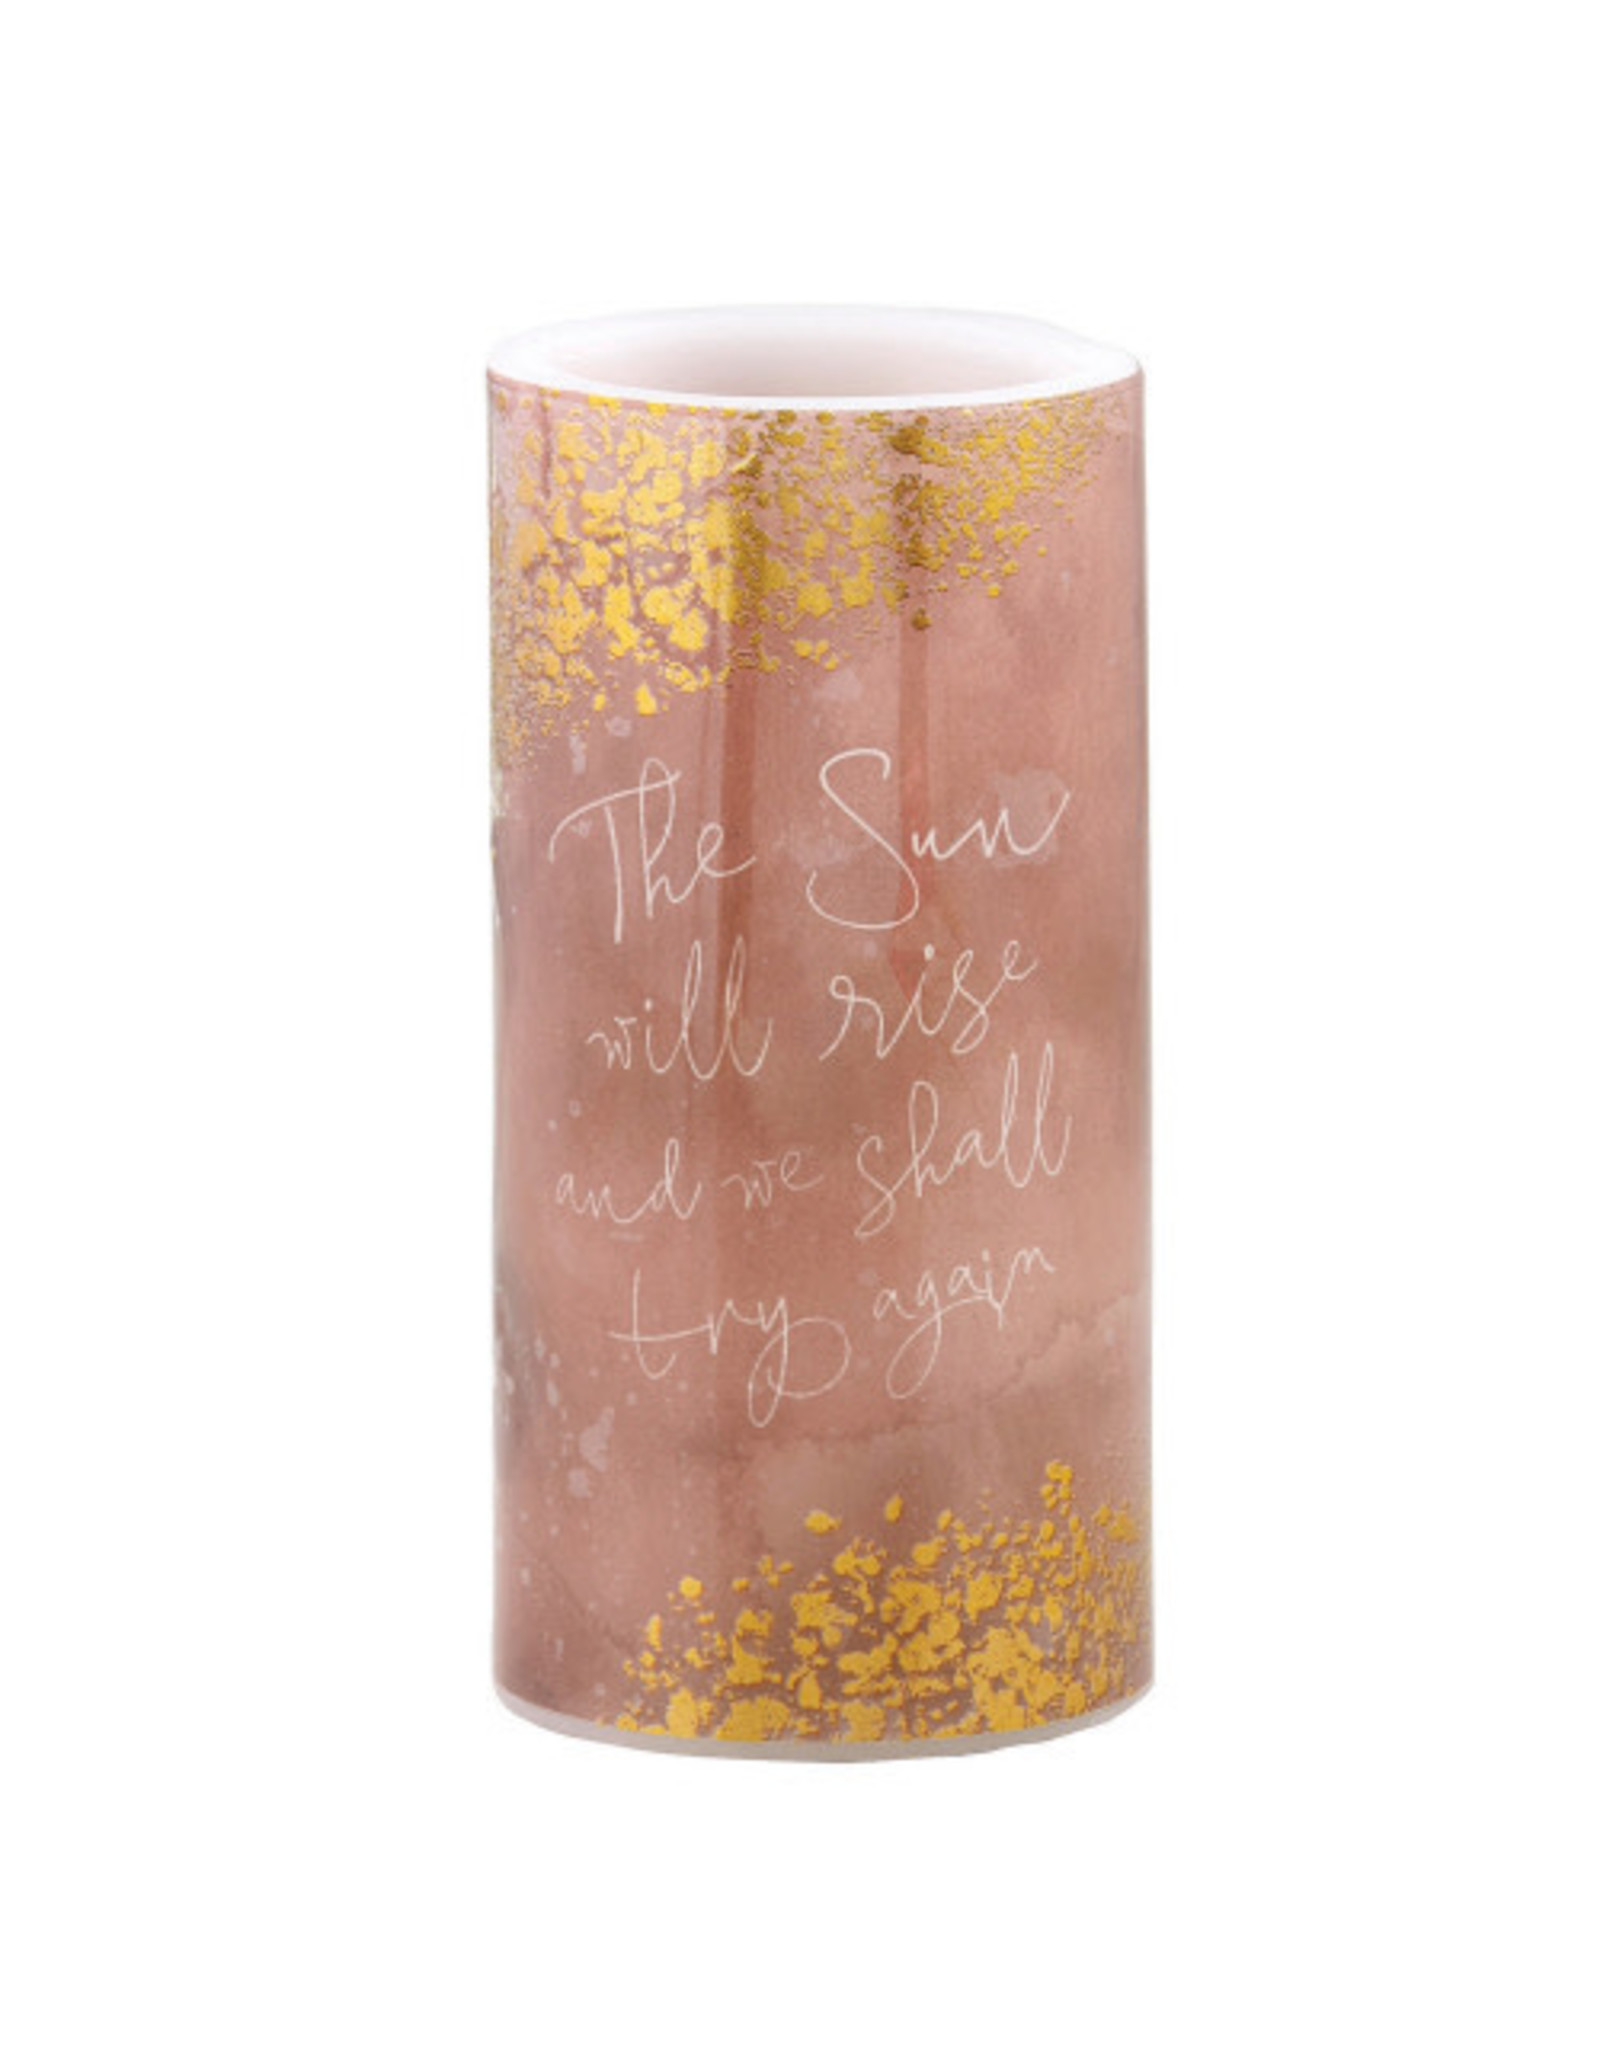 Heartfelt LED Candle, The Sun Will Rise And We Shall Try Again